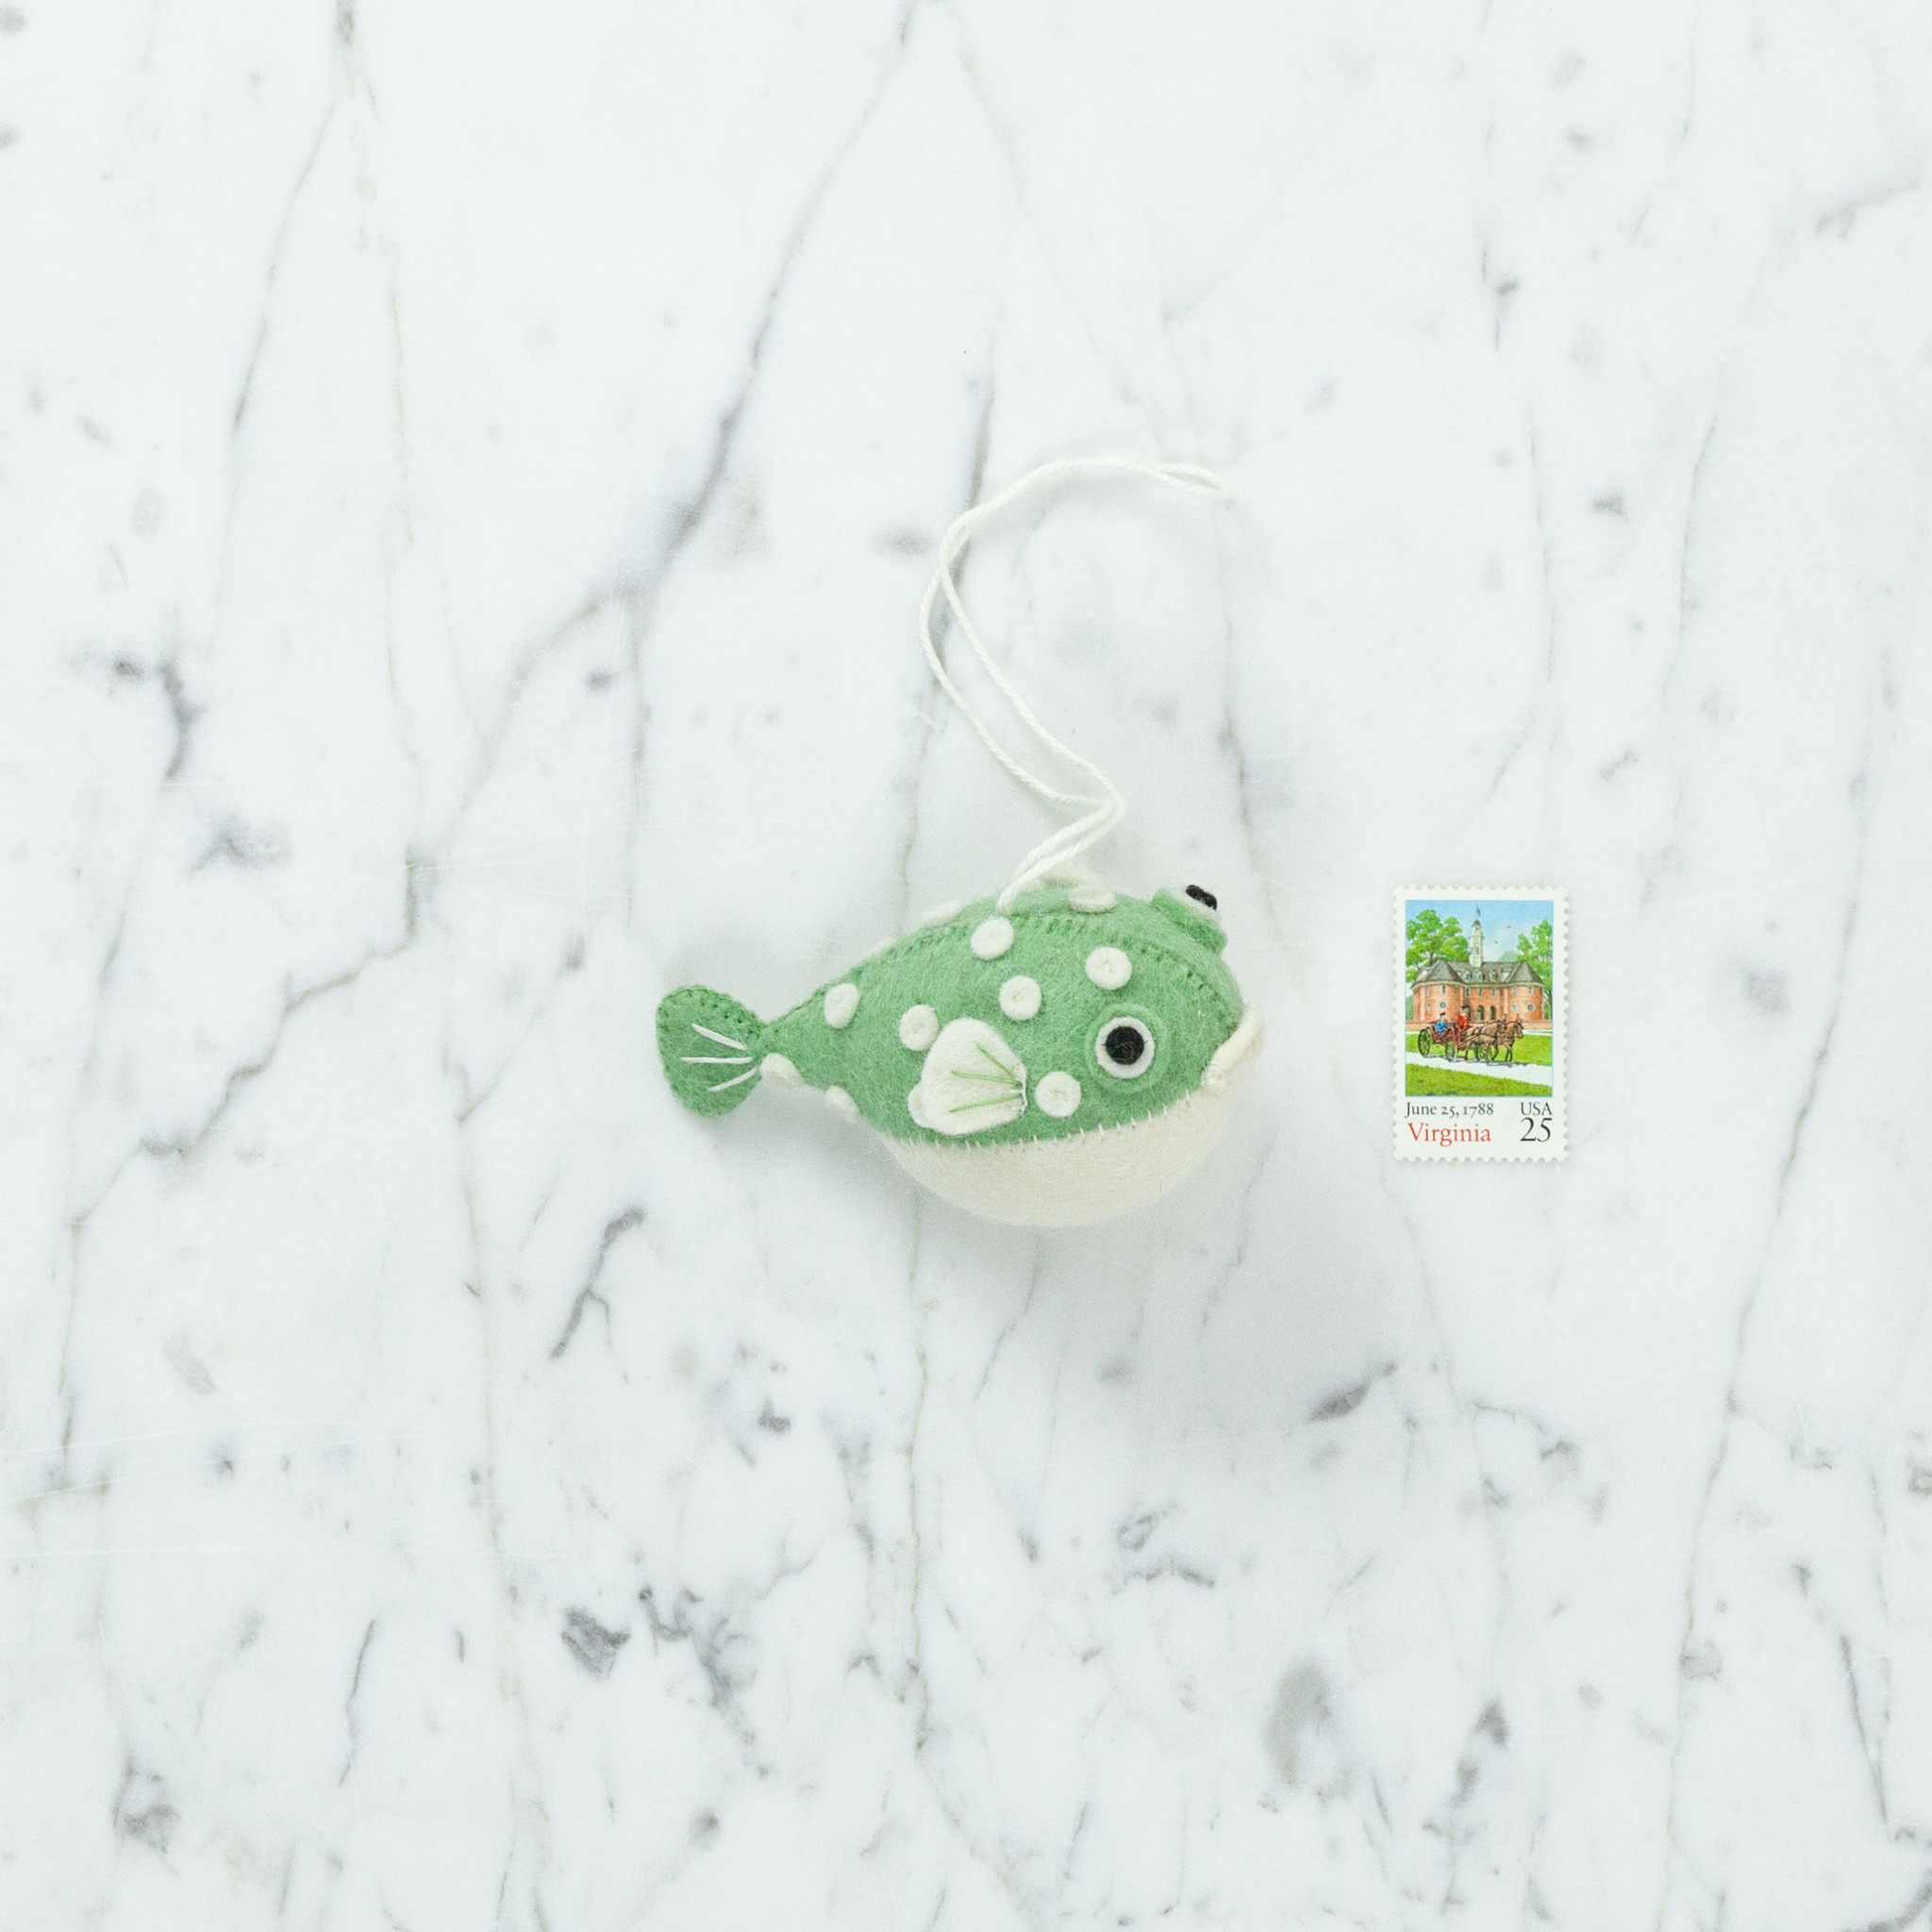 Craftspring Hand Felted Chubby Puffer Fish Ornament - Green